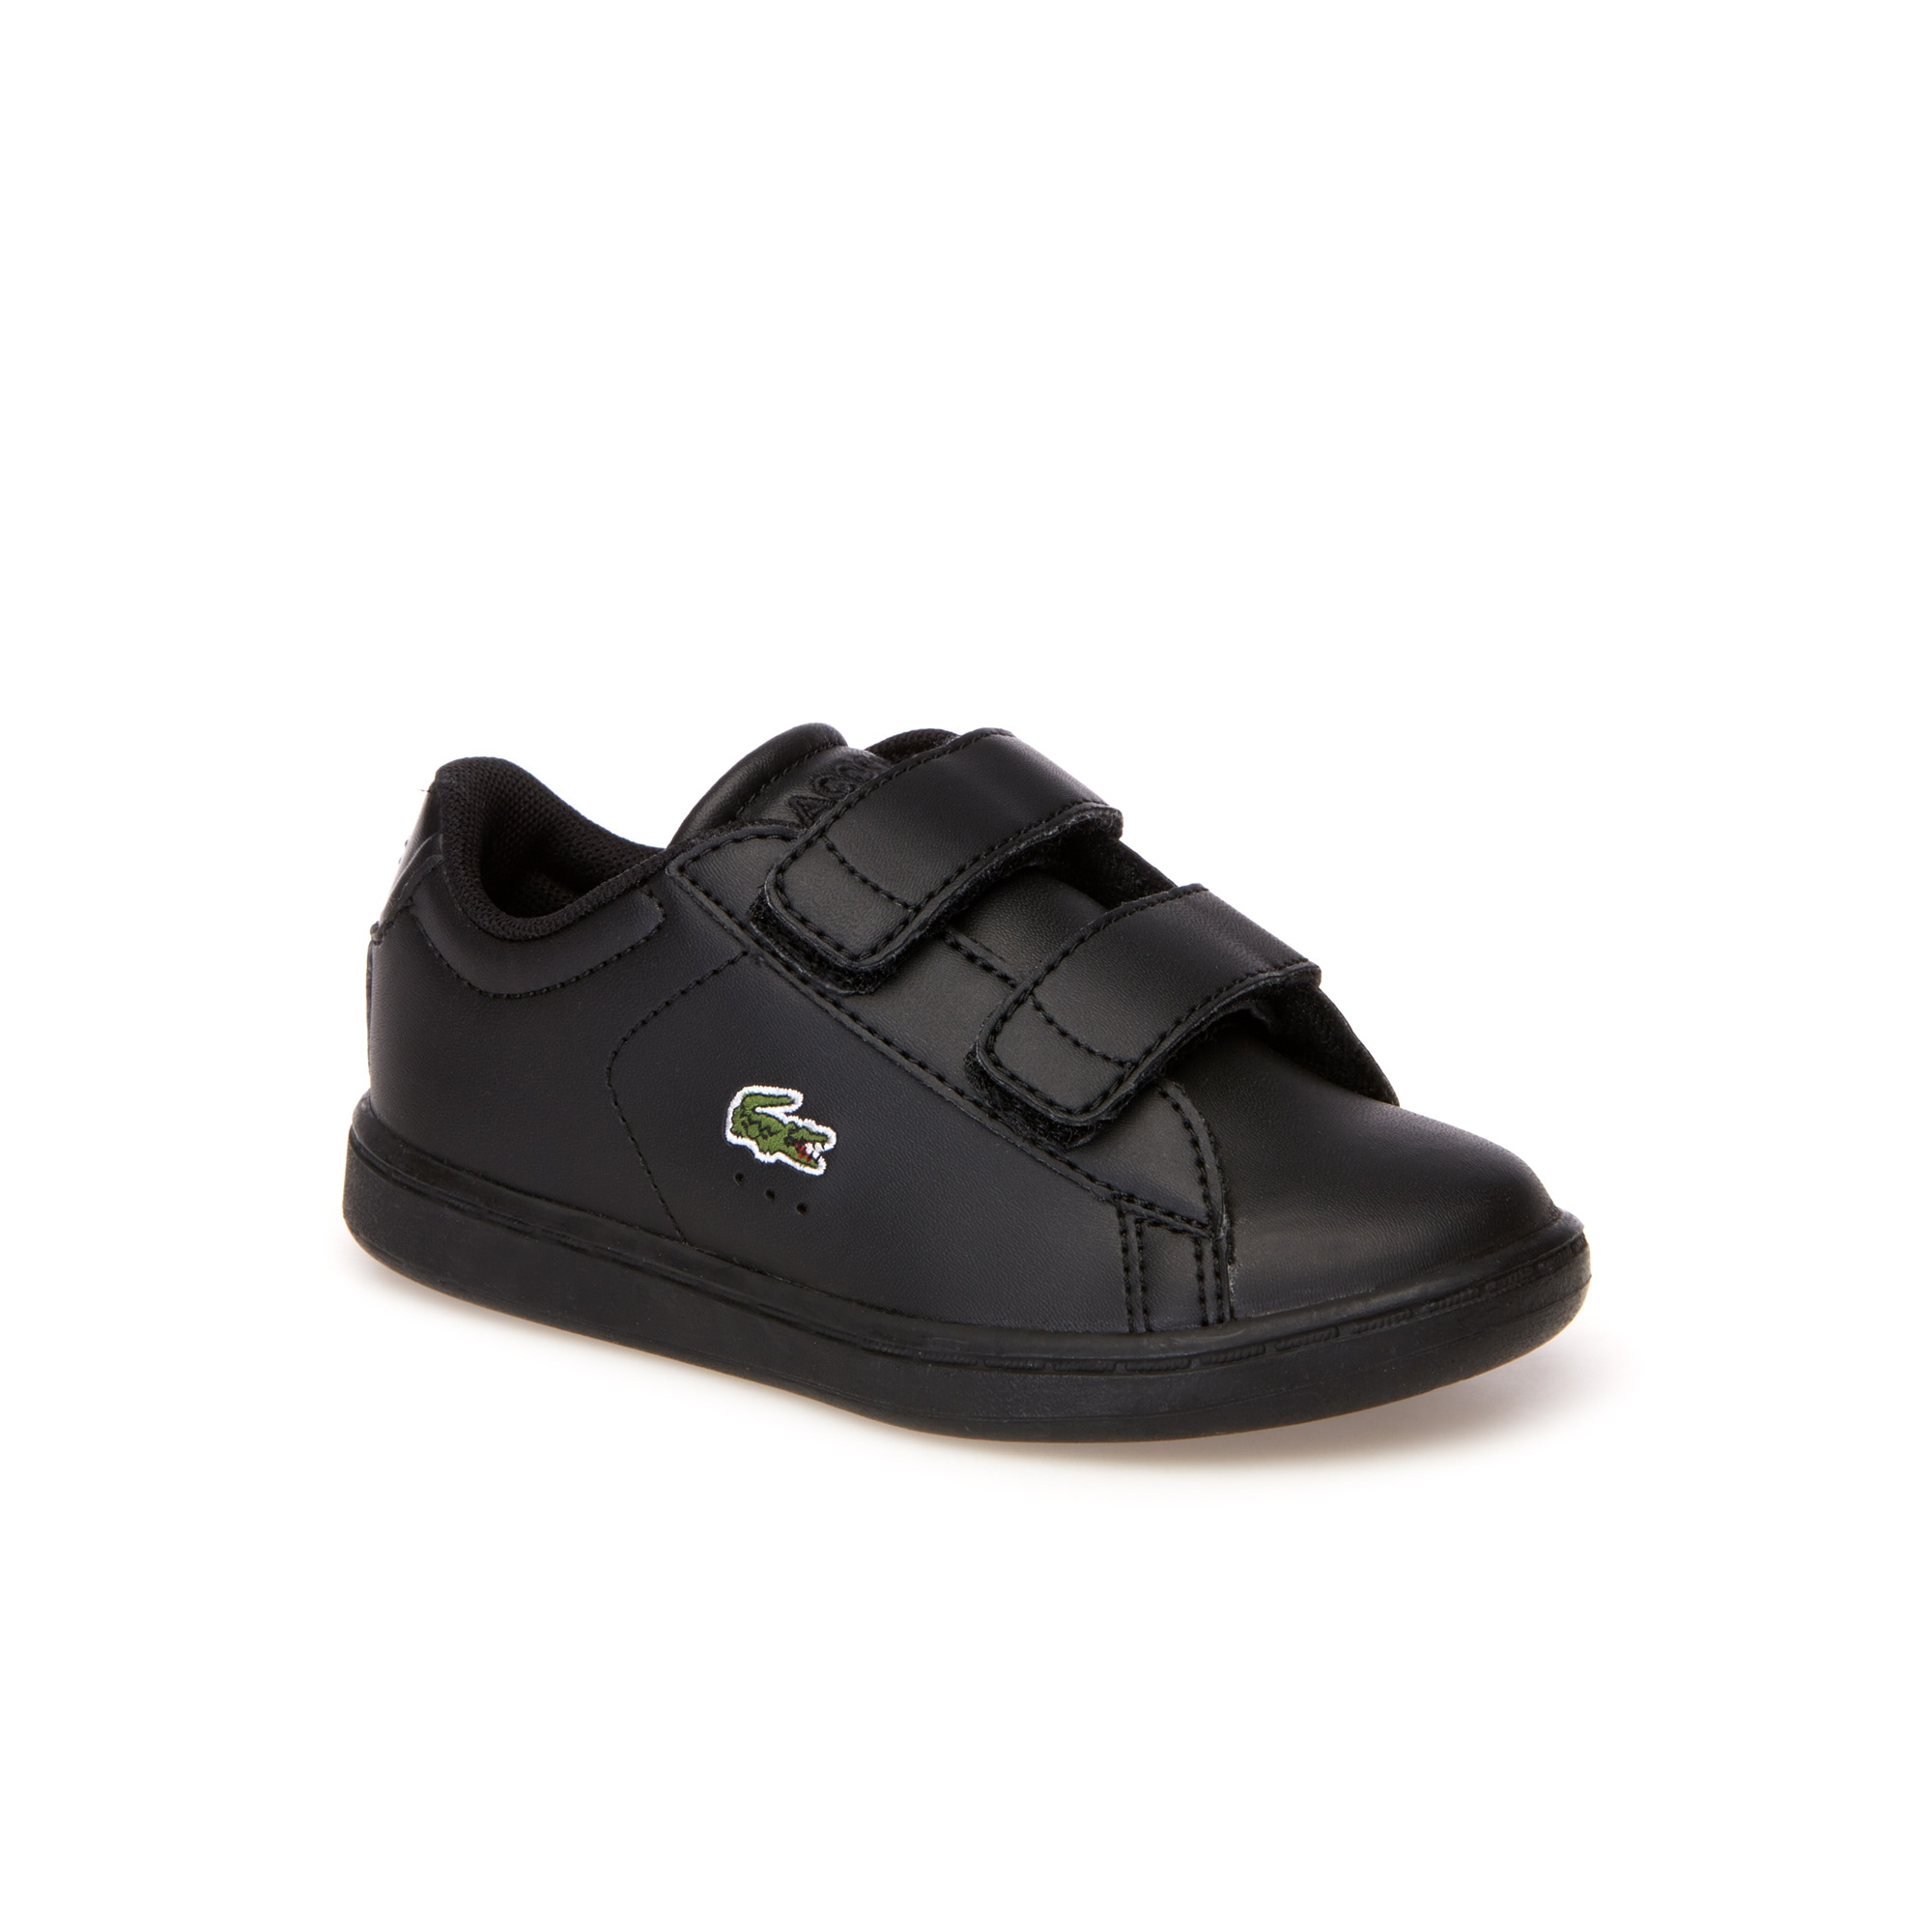 Infants' Carnaby Evo Leather-look Trainers